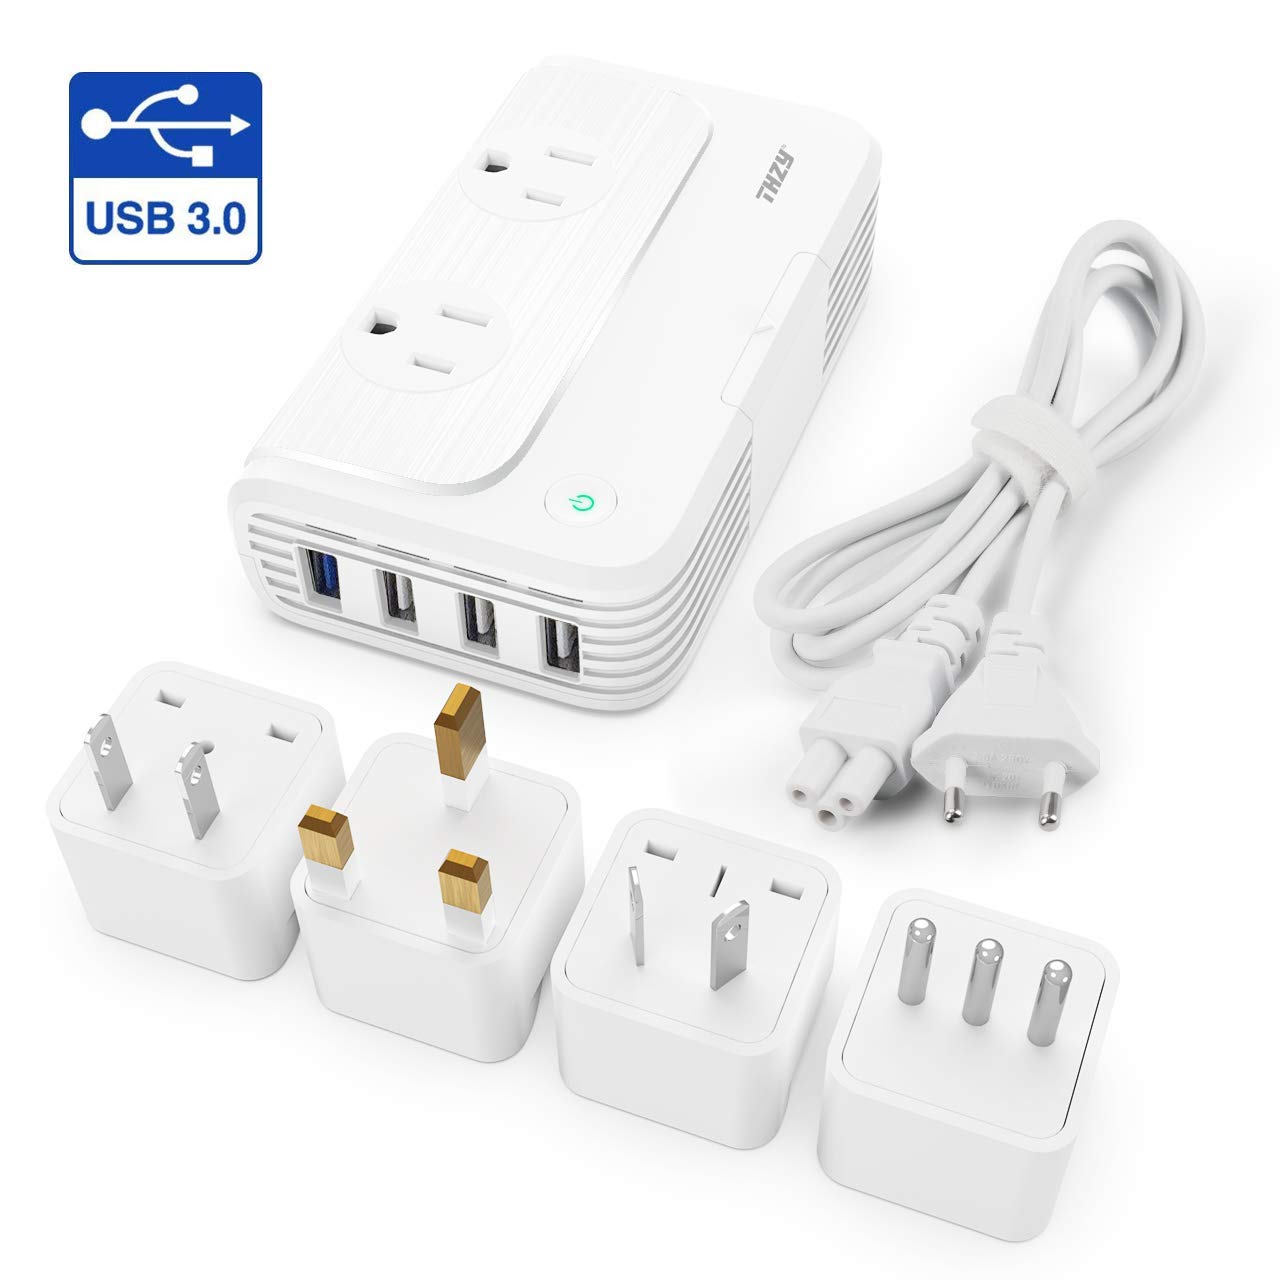 Voltage Converter Travel Adapter, LOFTWELL International Step Down 220V to 110V Converter with 4-Port USB Charging, Worldwide Plug Adapter with UK/AU/US/EU/Italy Plug for International Travel